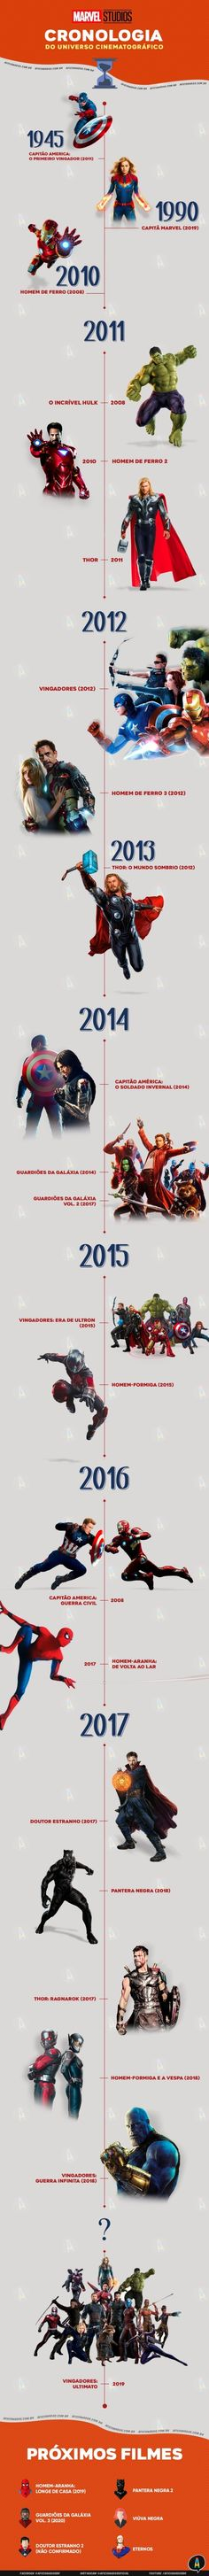 Movie Poster Font Size till Movie Poster Font Ttf since Marvel Movie Posters Hd within The Room Movie Poster Font so Movie Poster Standard Font Marvel Dc Comics, Marvel Avengers, Marvel Comic Universe, Comics Universe, Marvel Cinematic Universe, Marvel Movie Posters, Marvel Movies, Movie Poster Font, Series Dc